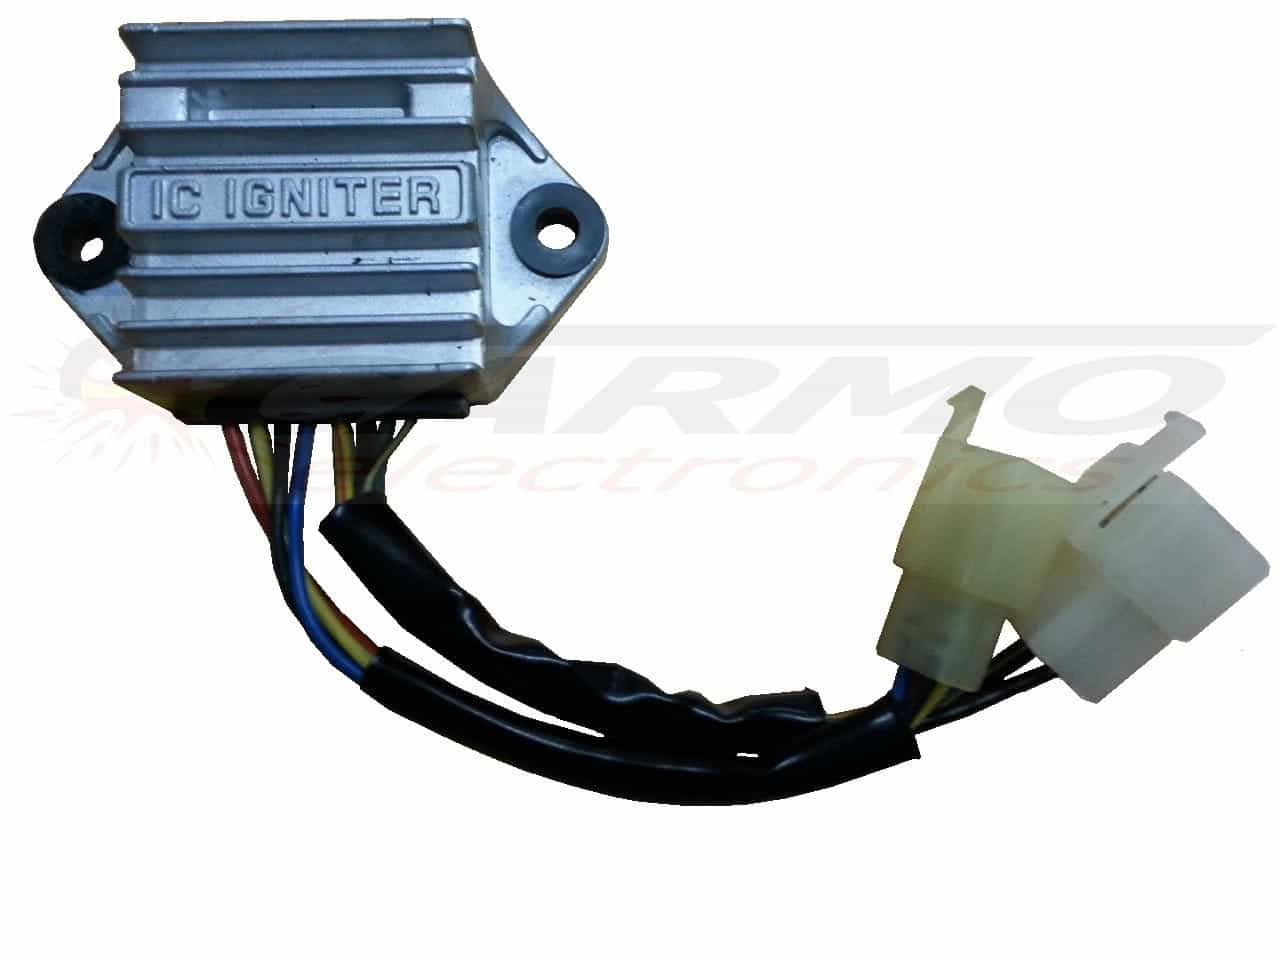 Kawasaki Carmo Electronics The Place For Parts Or Gpz1000rx Wiring Diagram Kz550 Cdi Igniter